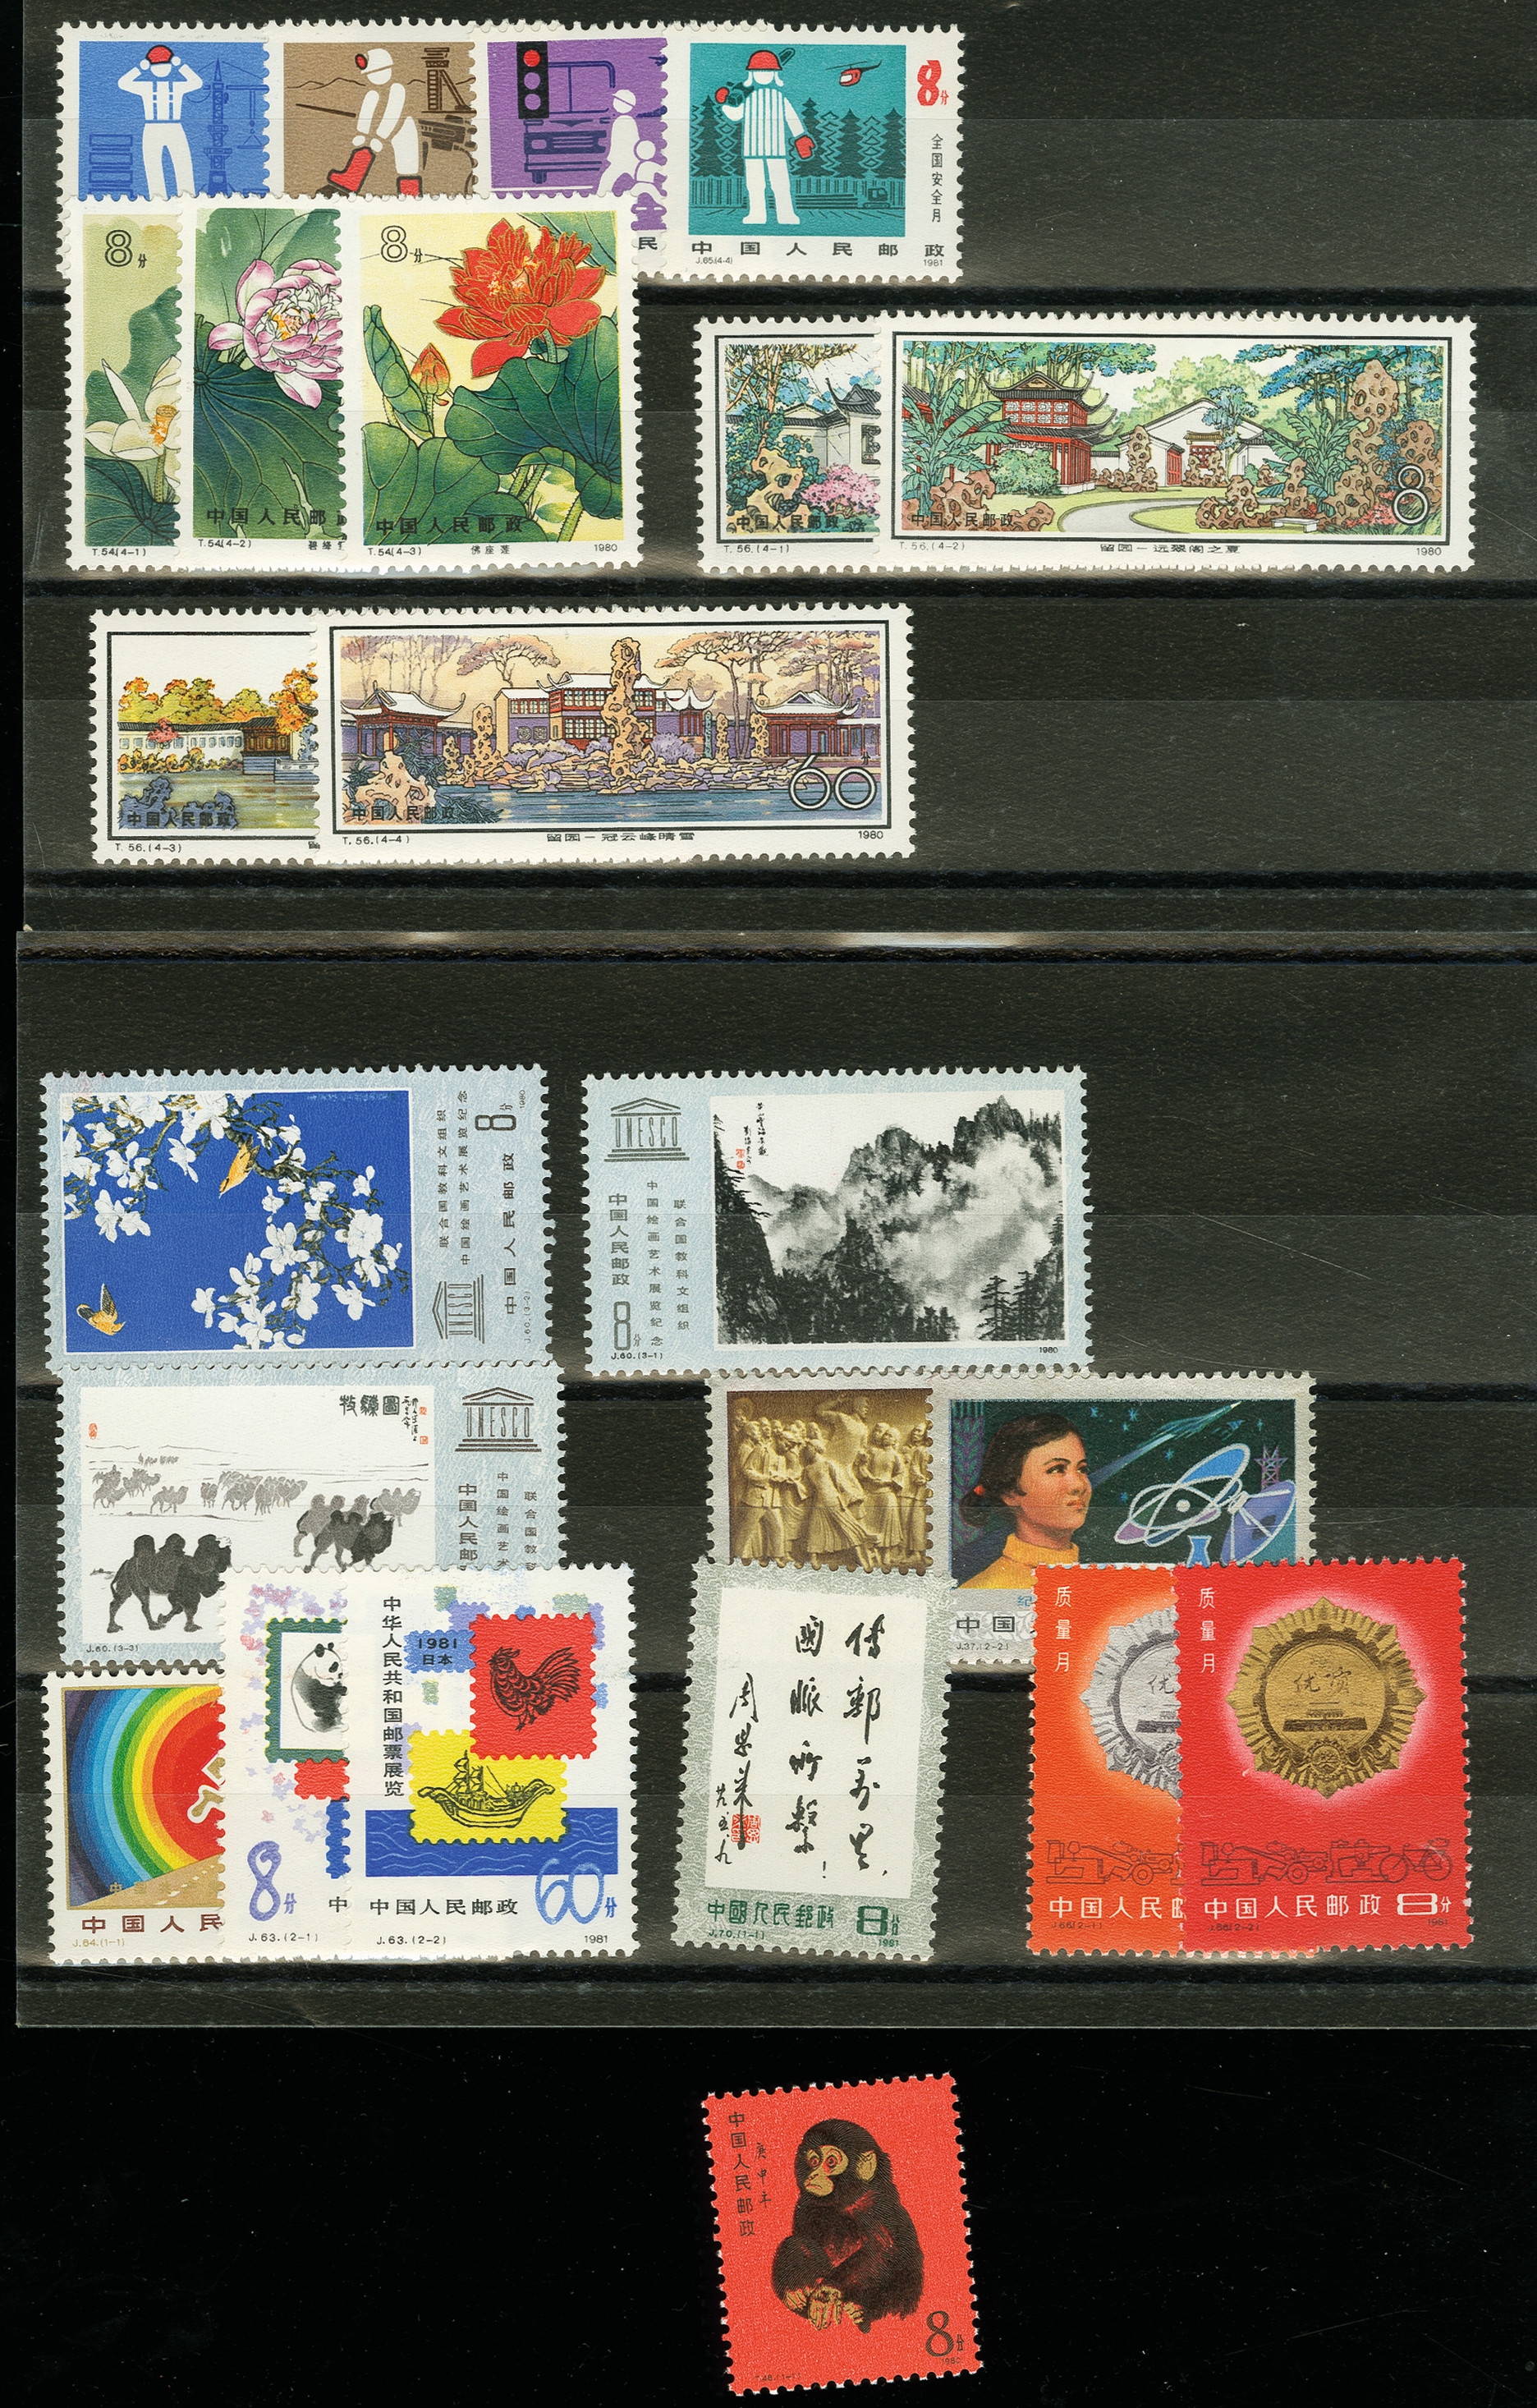 Lot 978 - Overseas People's Republic of China -  Heinrich Koehler Auktionen Auction #368- Day 1